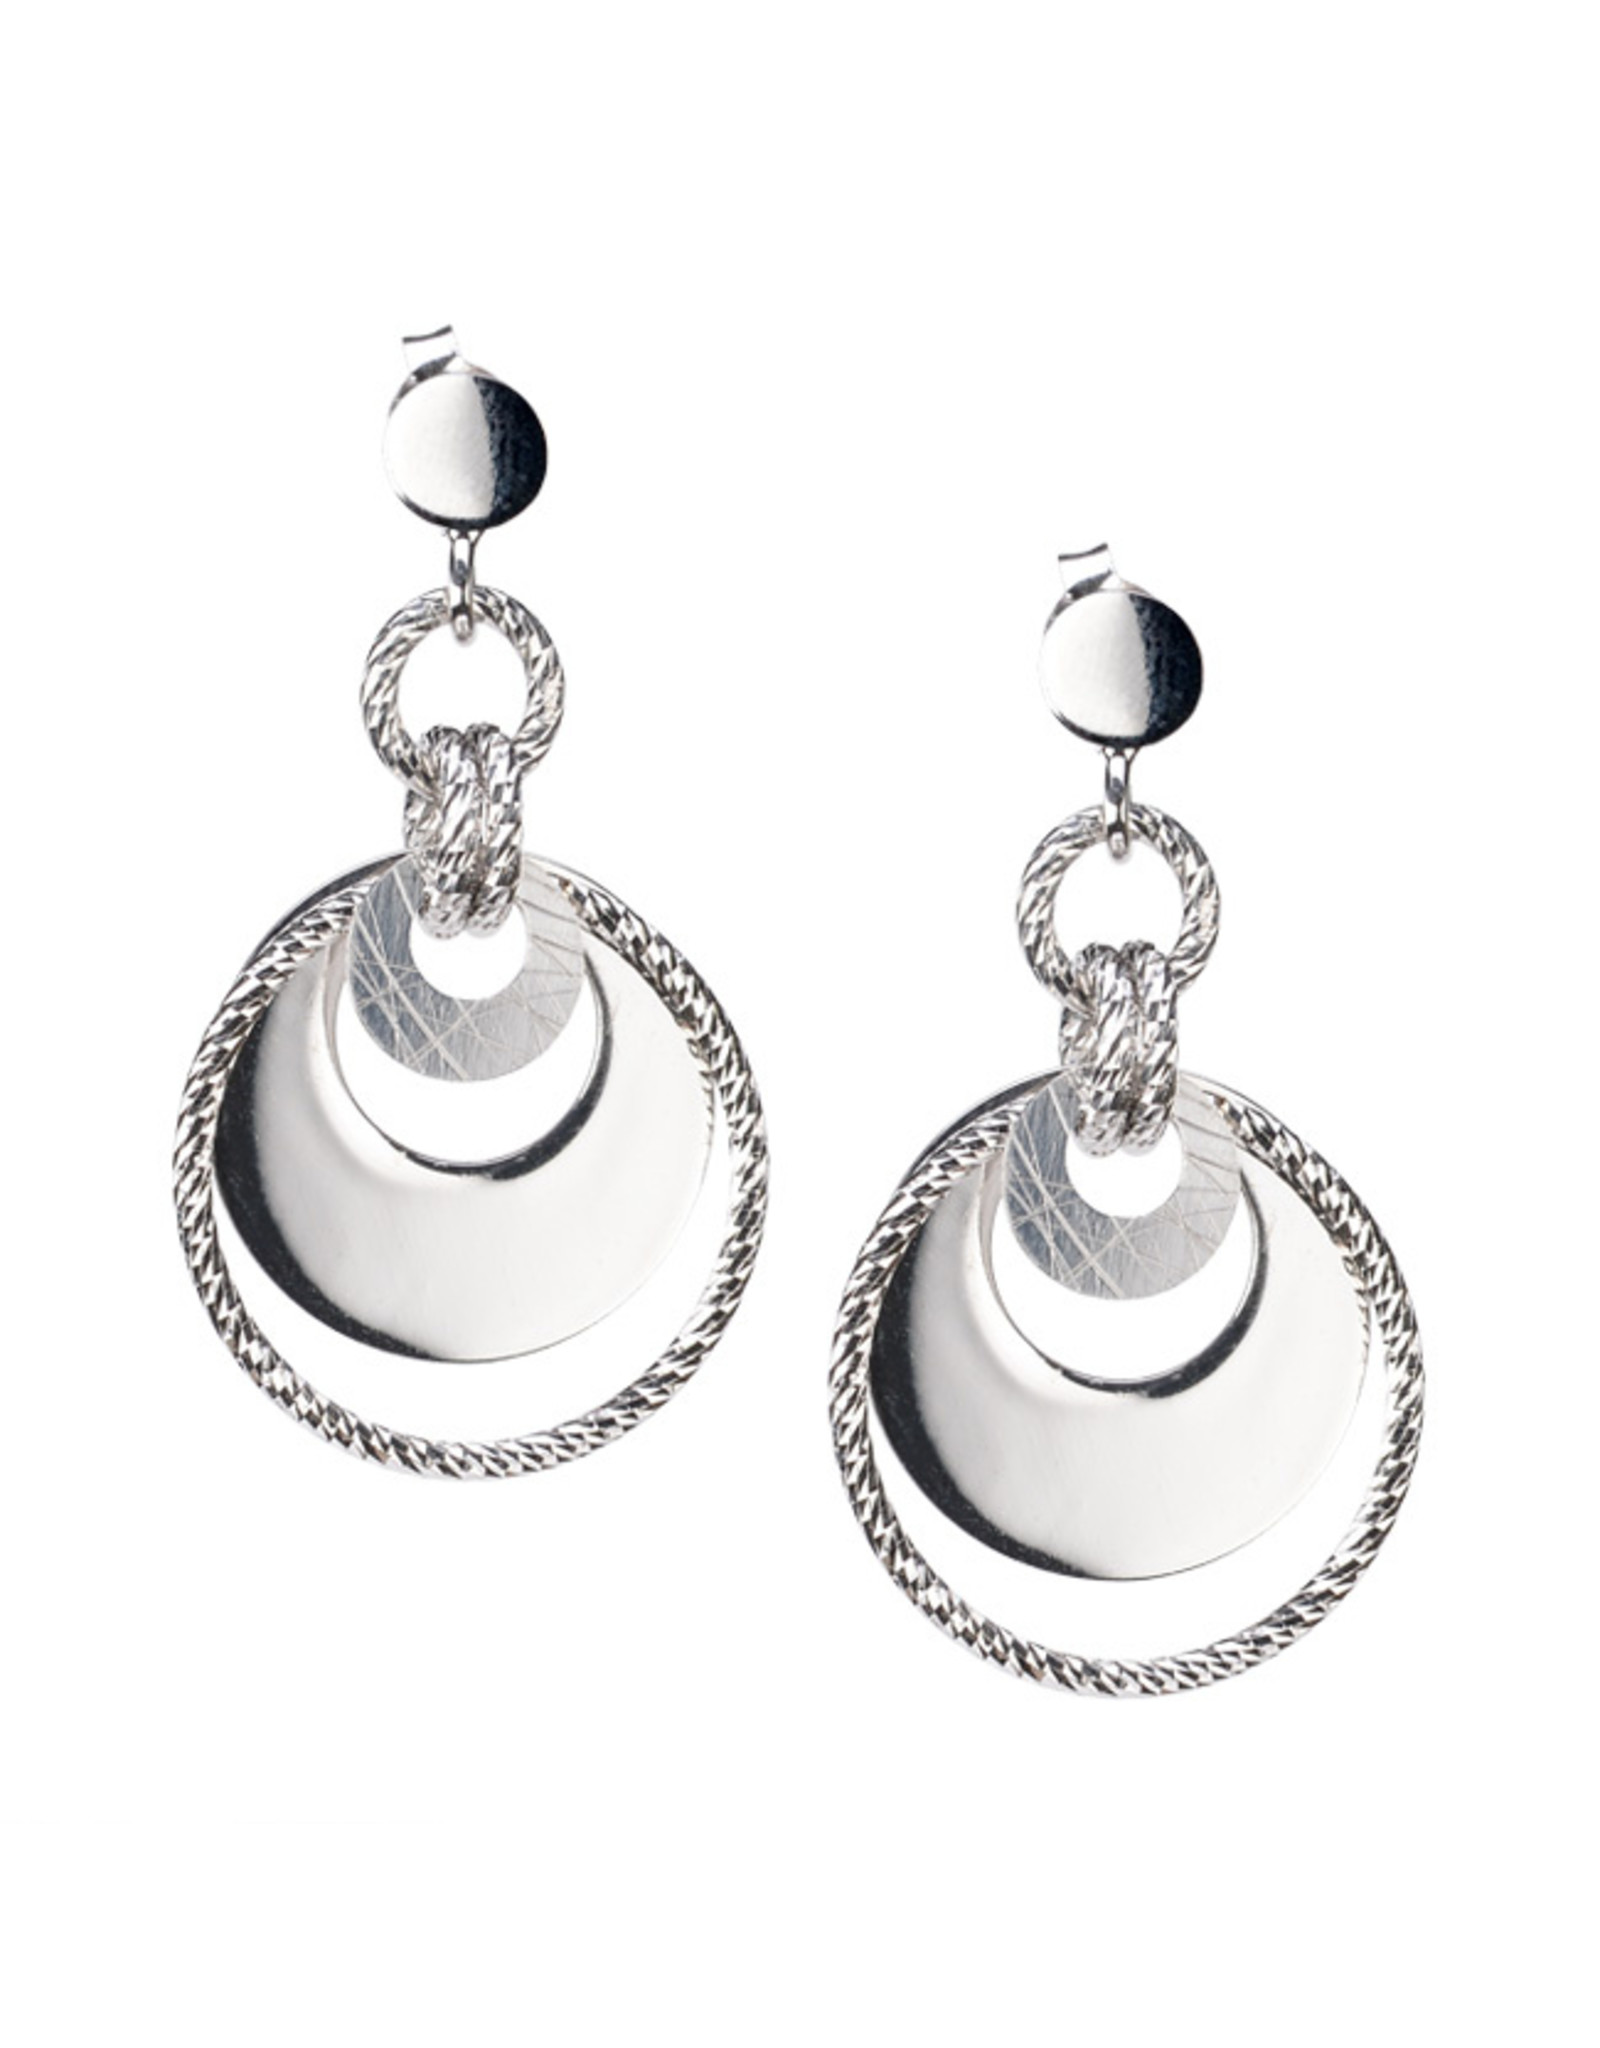 Frederic Duclos Jenny Earrings SS